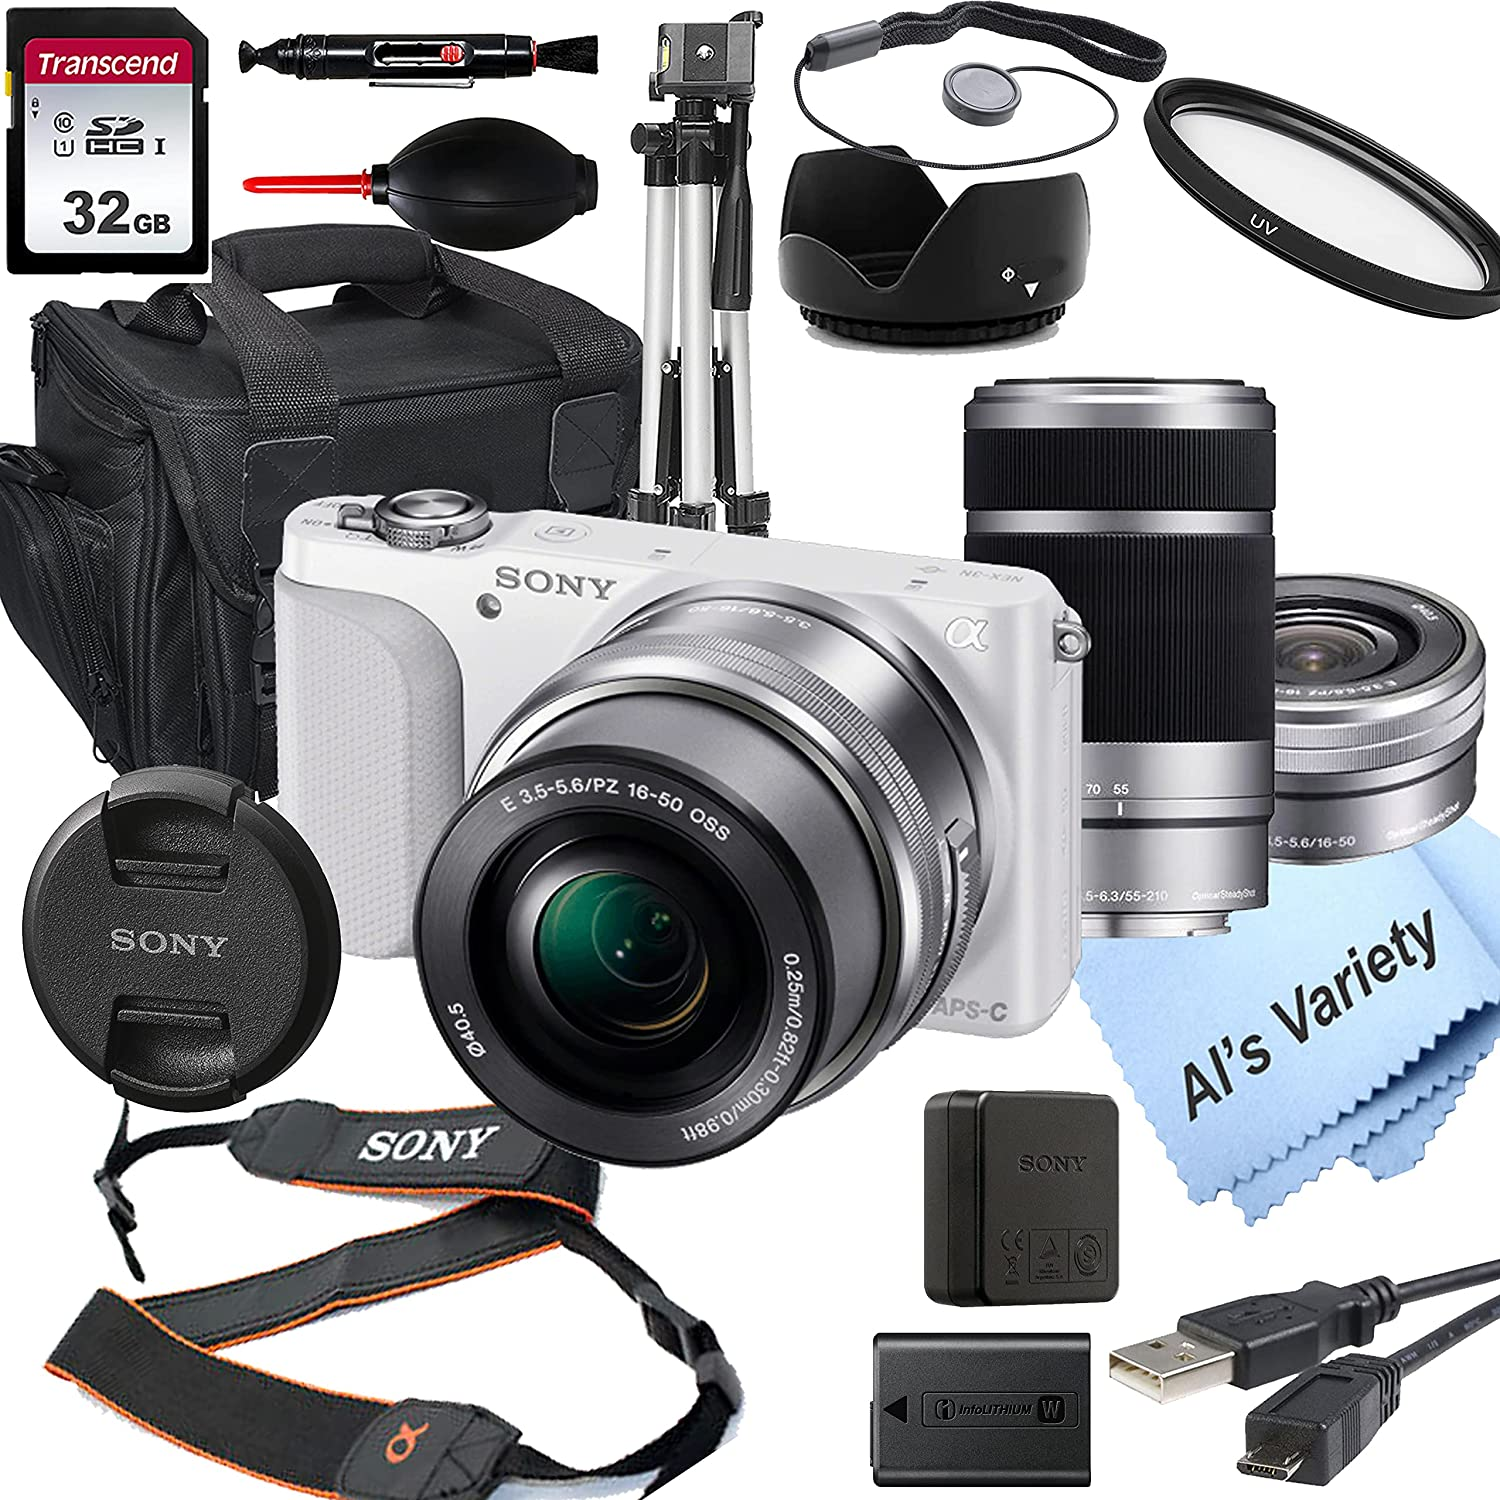 Sony Alpha Super Special SALE held a5100 White Mirrorless Camera with 16-50mm Digital 40% OFF Cheap Sale